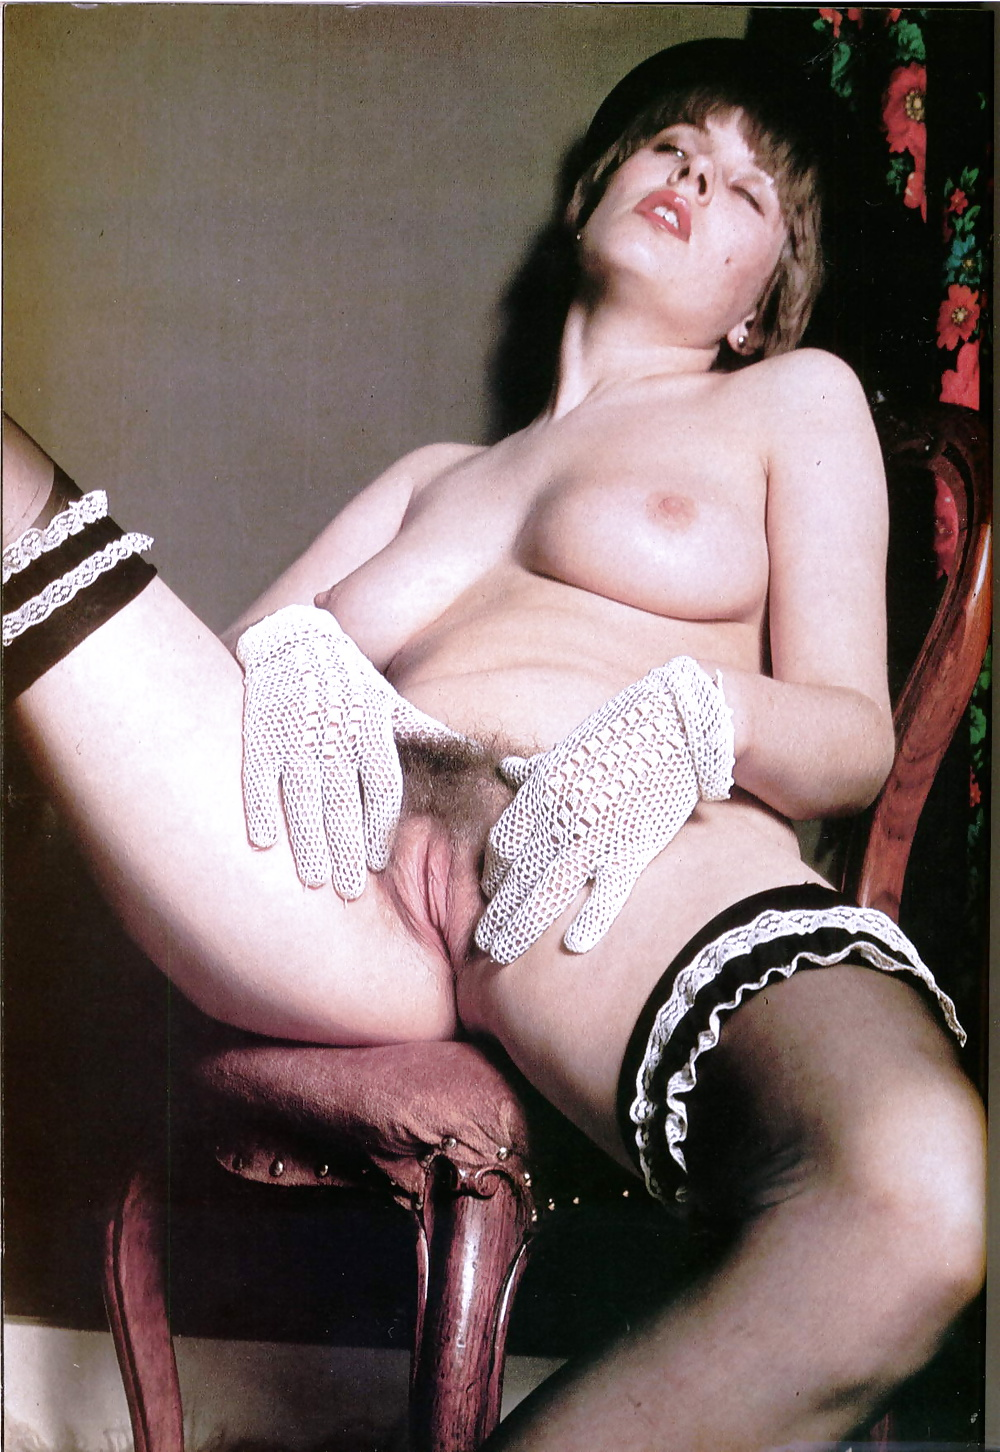 Vintage hairy pussy pics hairy sex galery